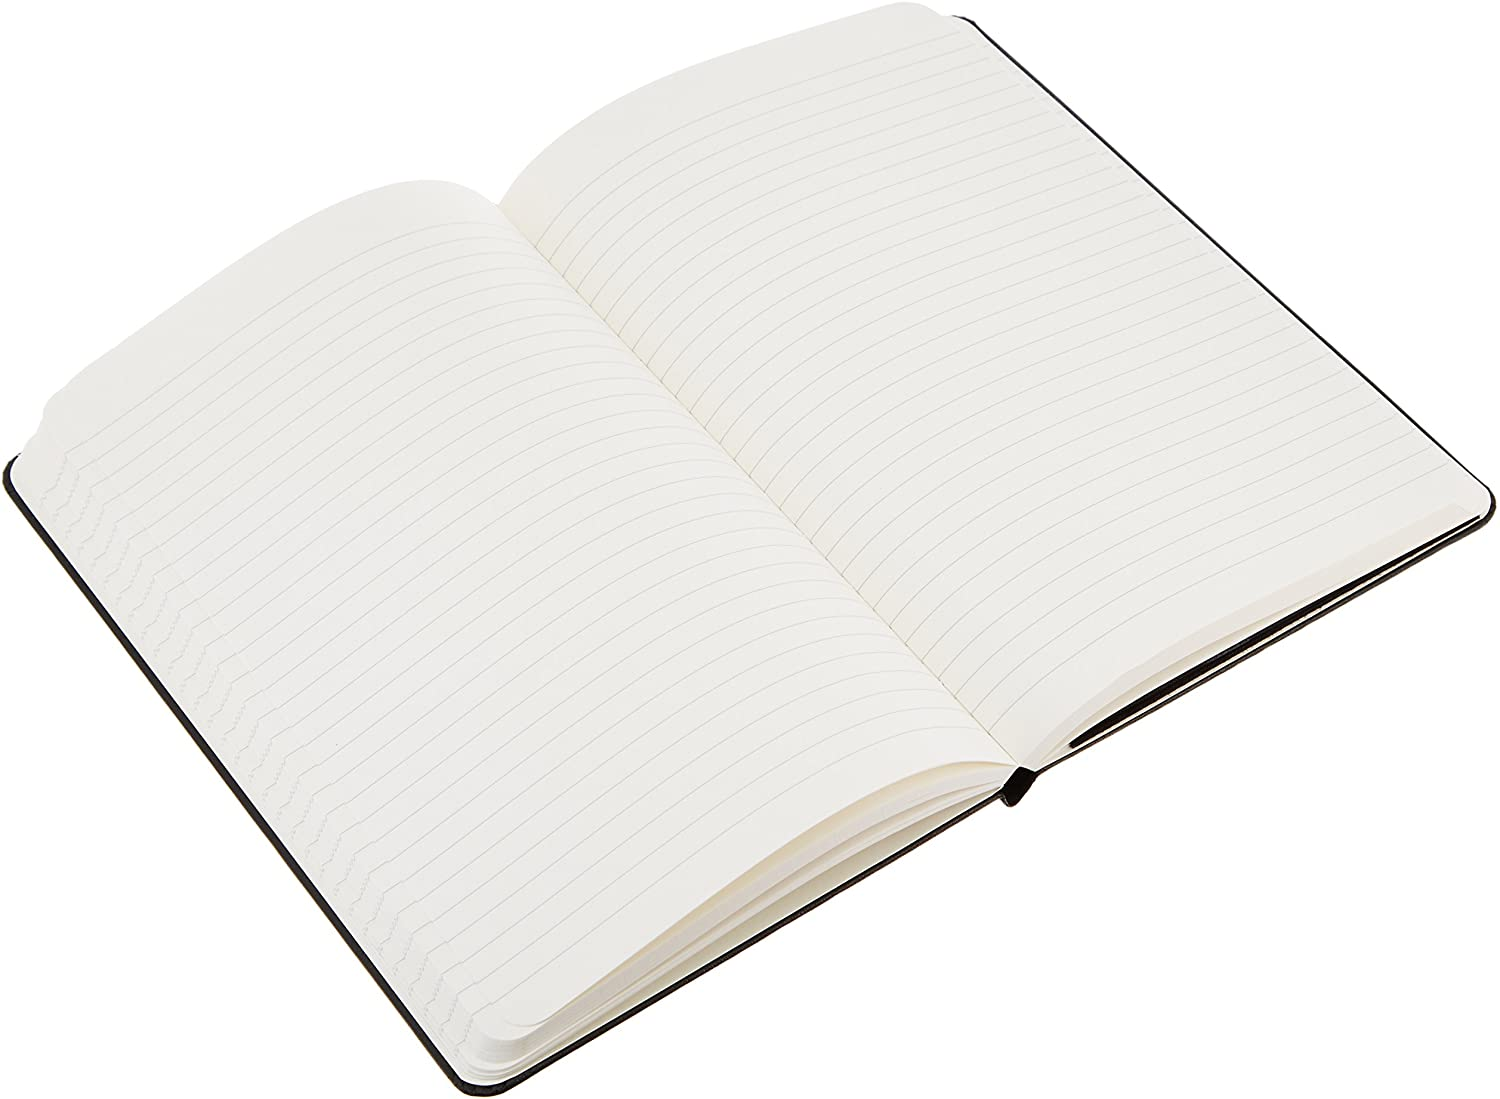 Amazon Basics Classic Lined Notebook, 240 Pages, Hardcover - Ruled